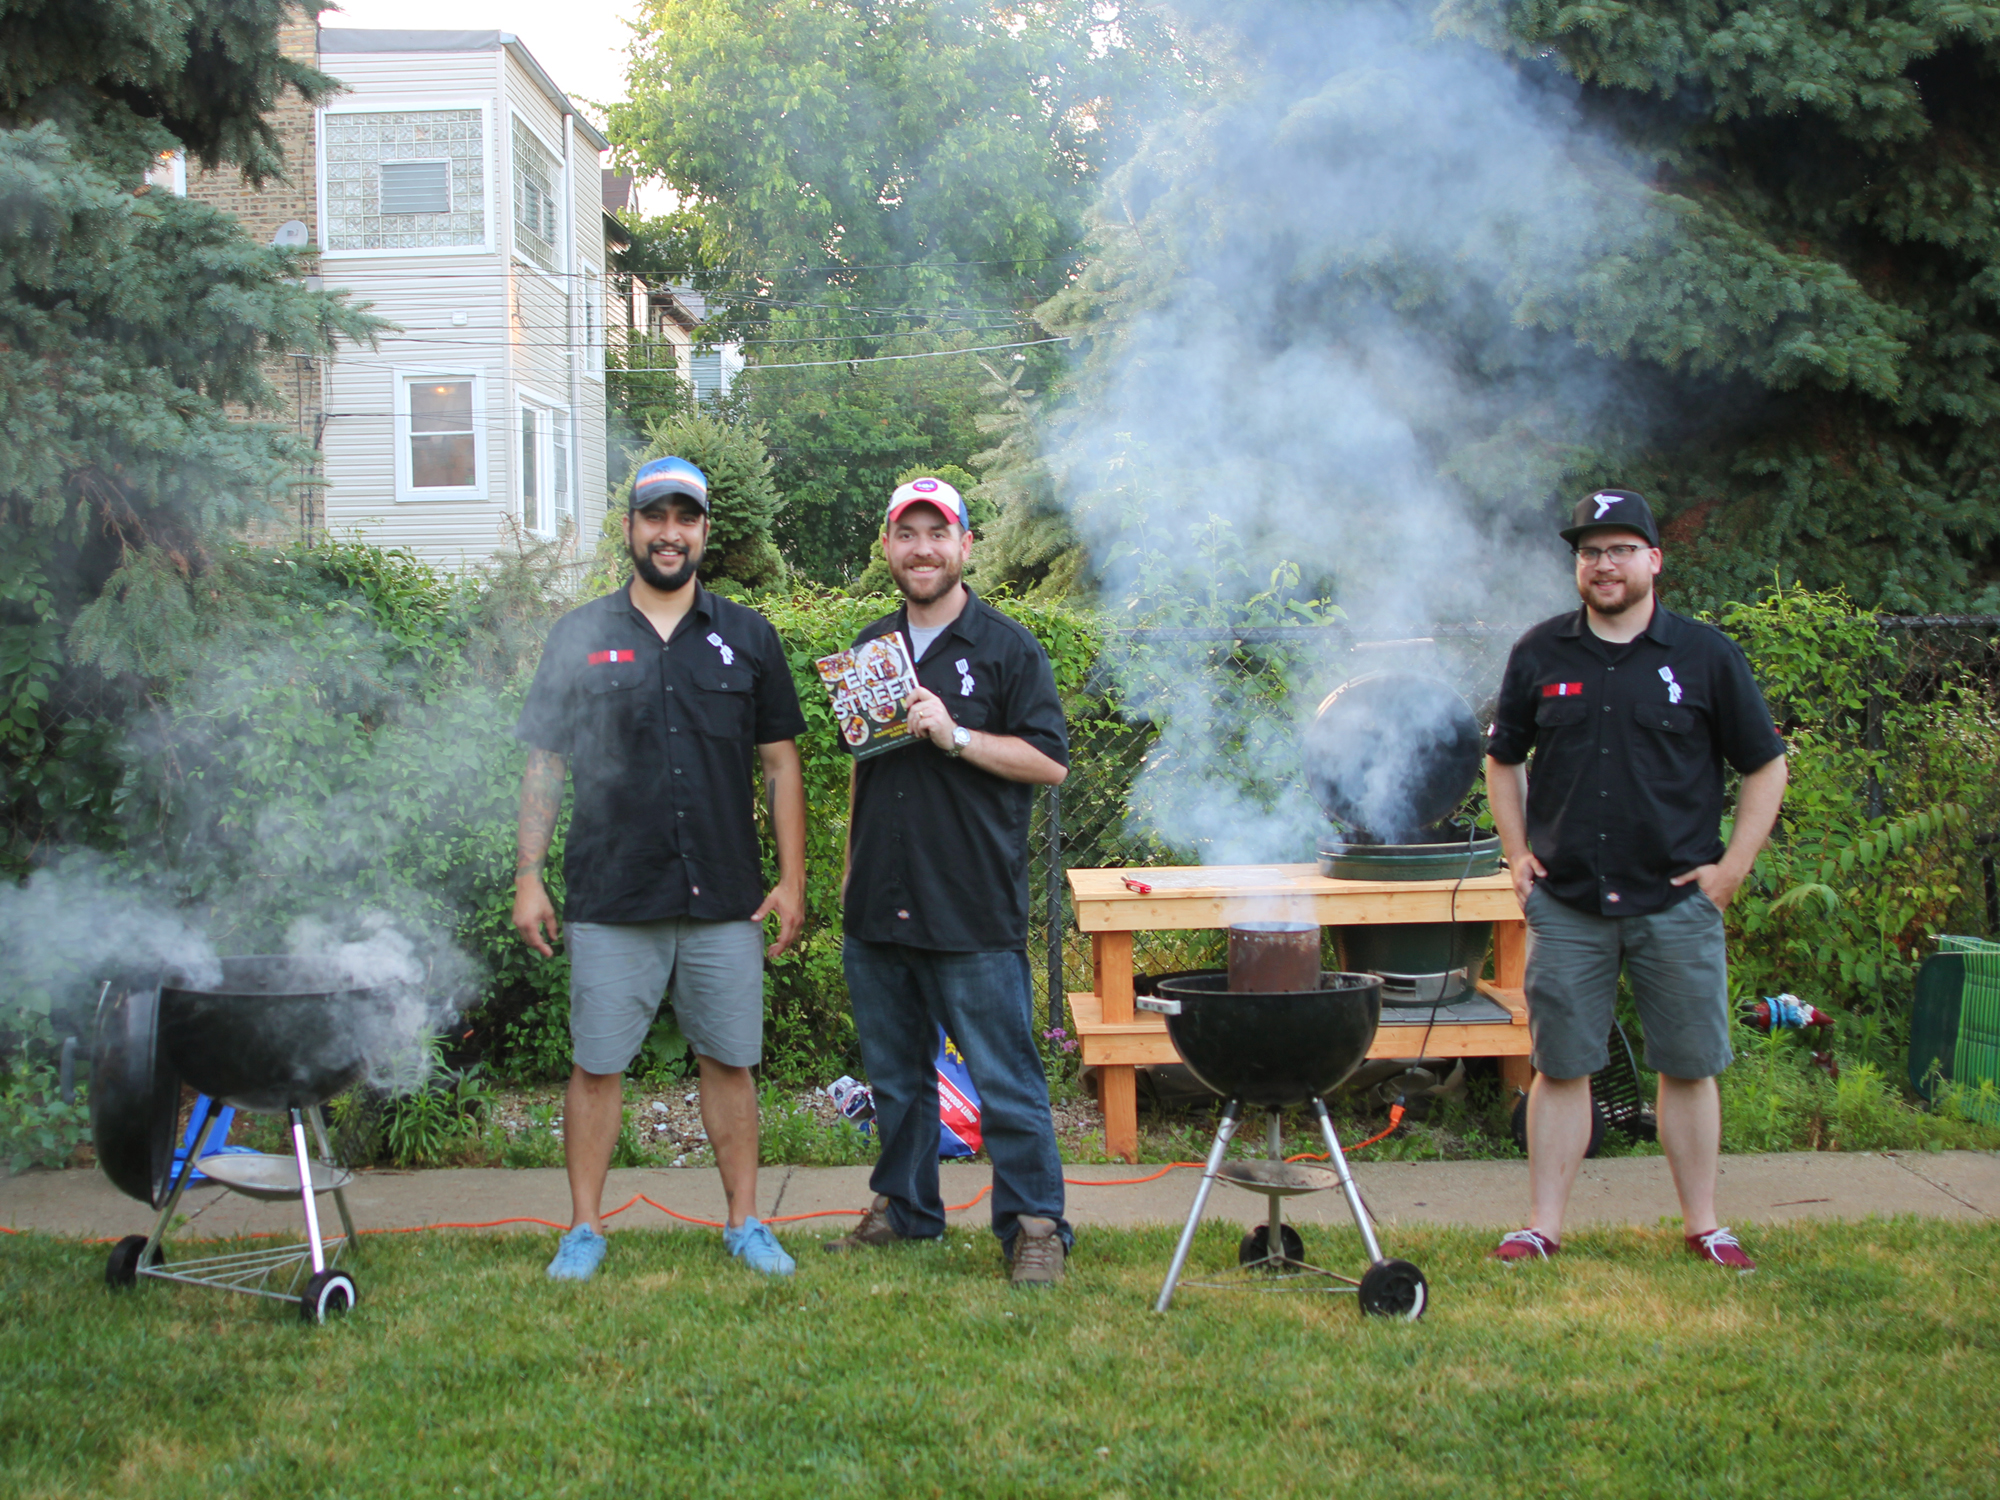 IN THE BACKYARD MAKING STREET FOOD WITH THE MANBQUE GUYS